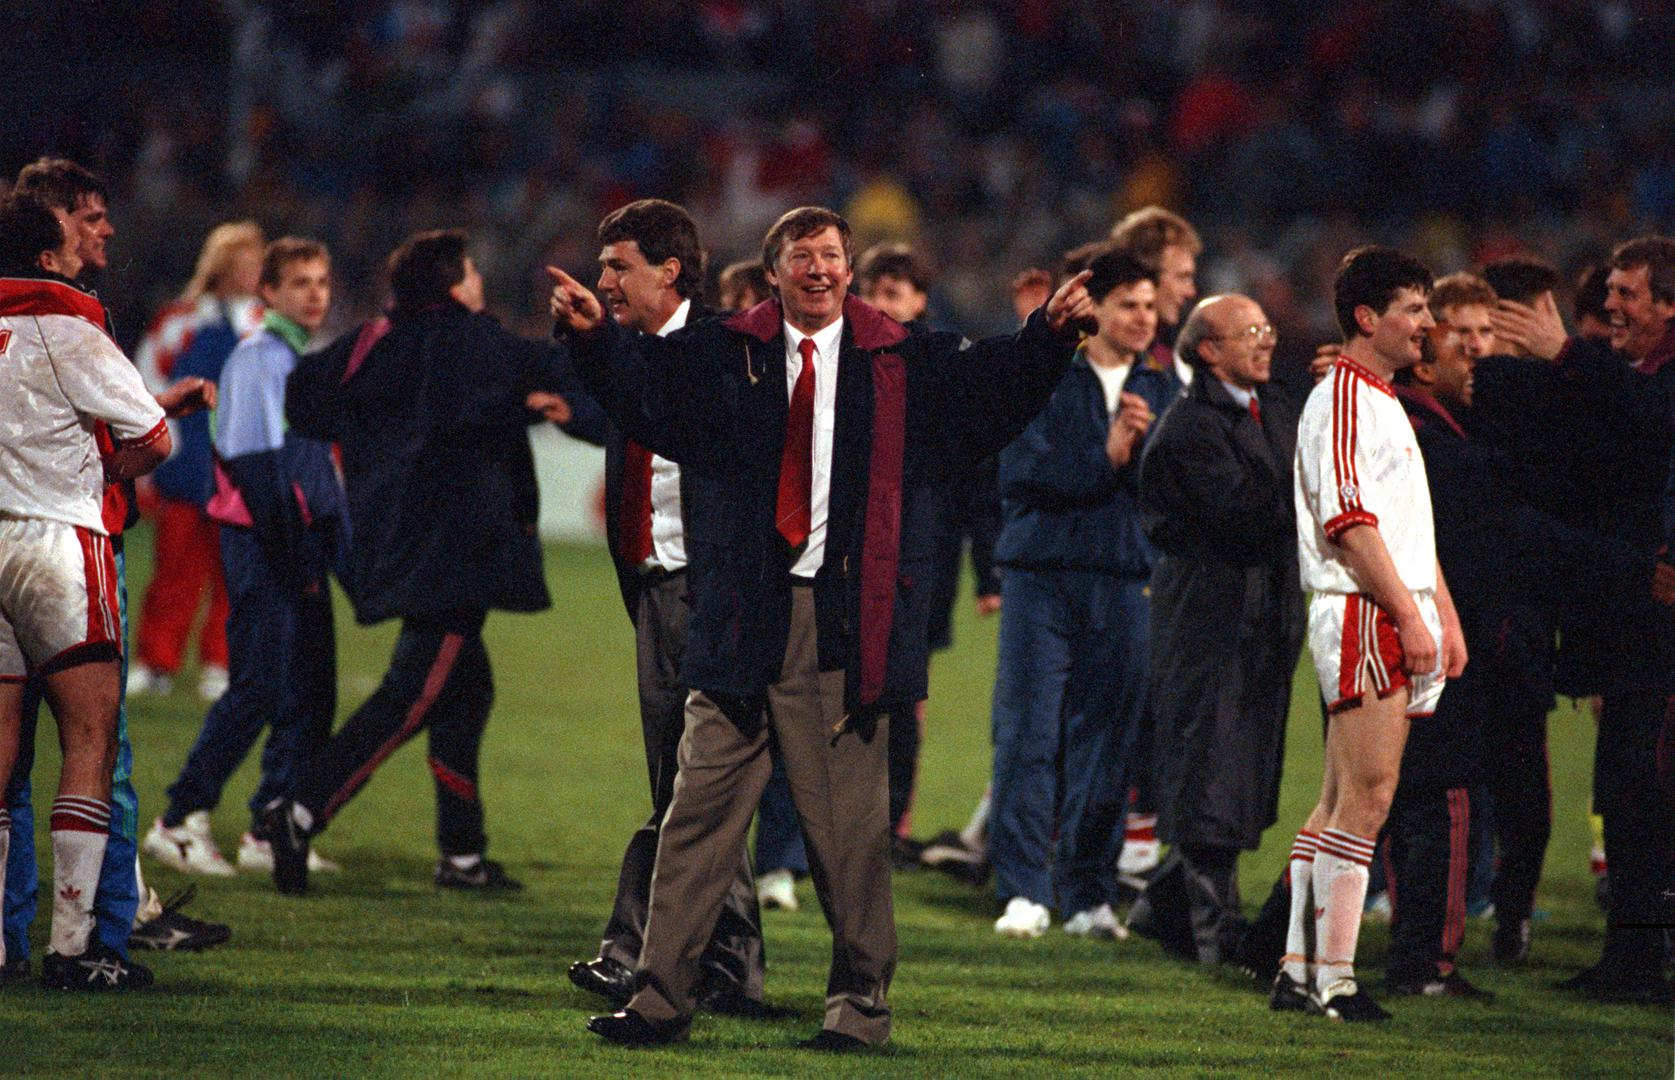 Alex Ferguson celebrates Manchester United's Cup Winners' Cup triumph over Barcelona in 1991.